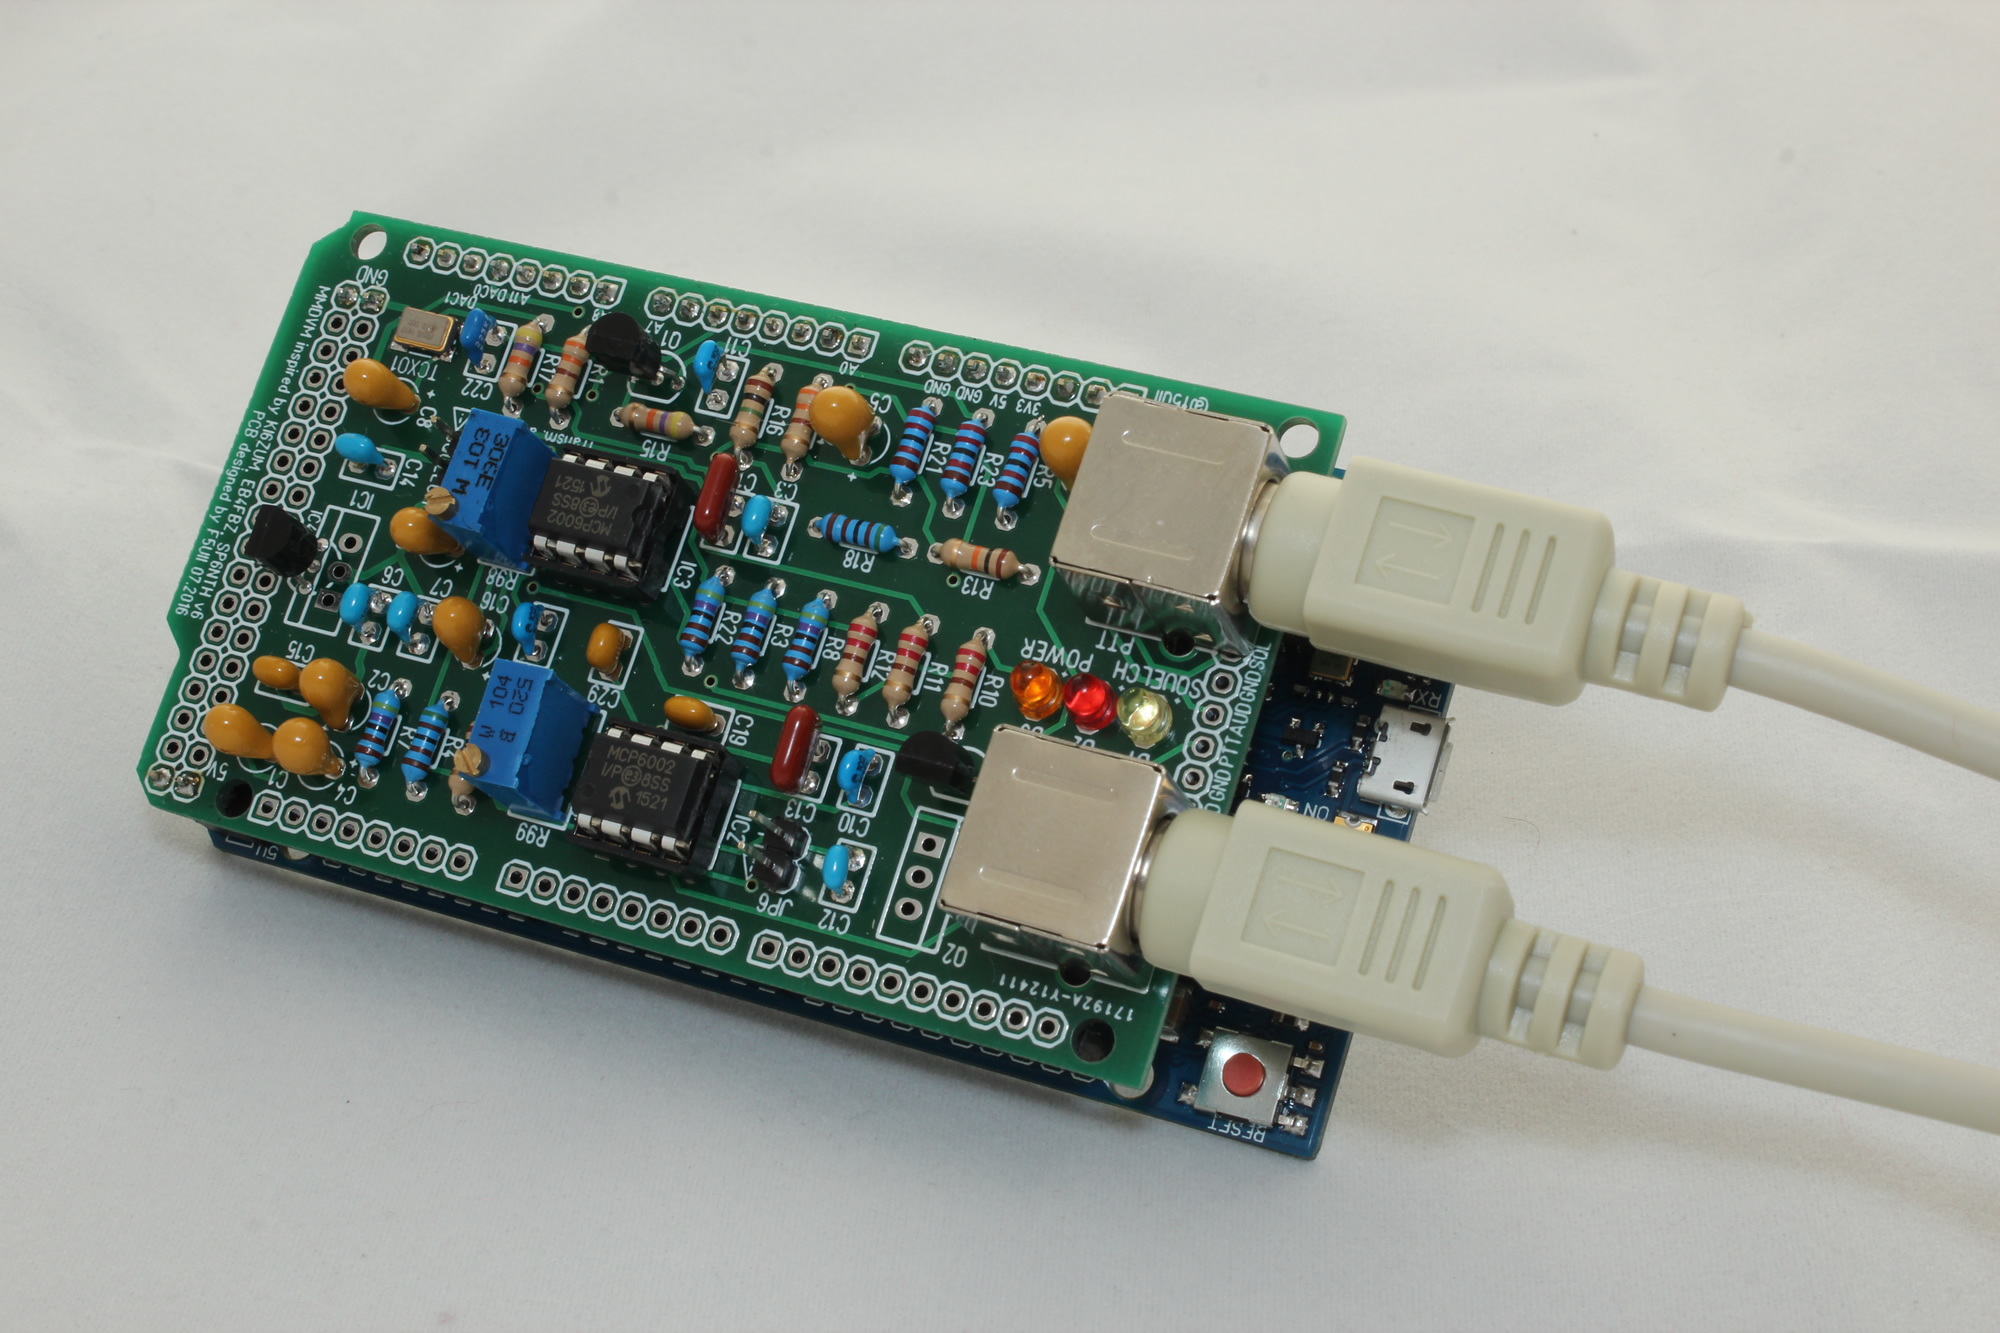 Cable mini Din board MMDVM mmdvm board for arduino due f5uii french hamradio station  at readyjetset.co